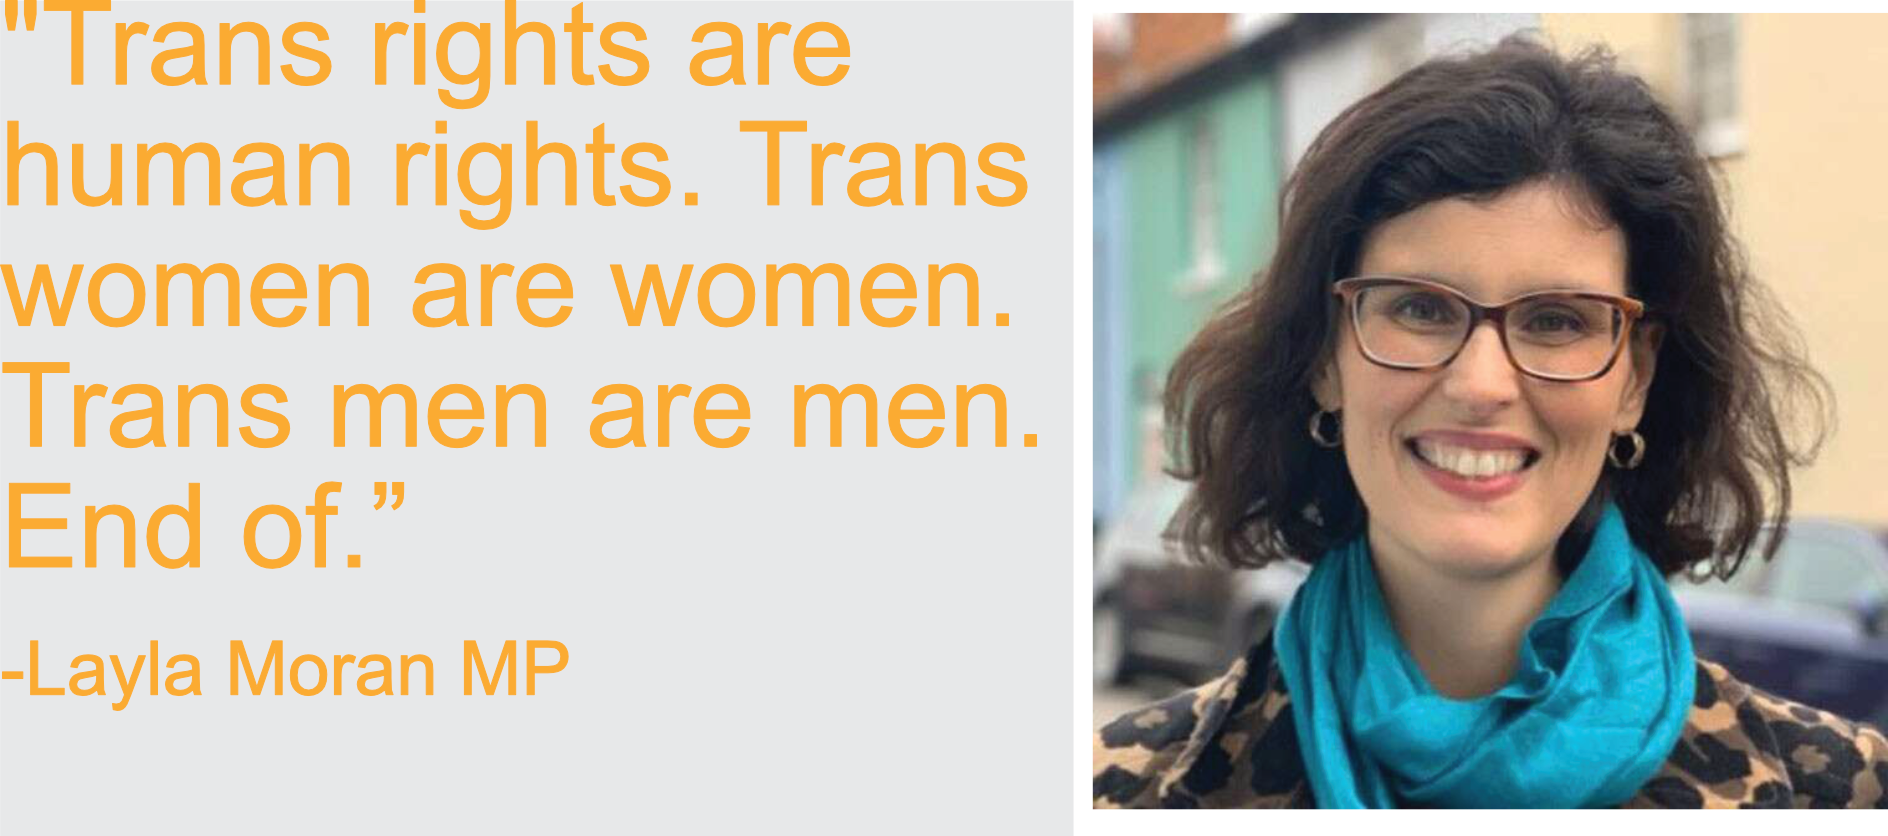 Trans rights are human rights. Trans women are women. Trans men are men. End of.